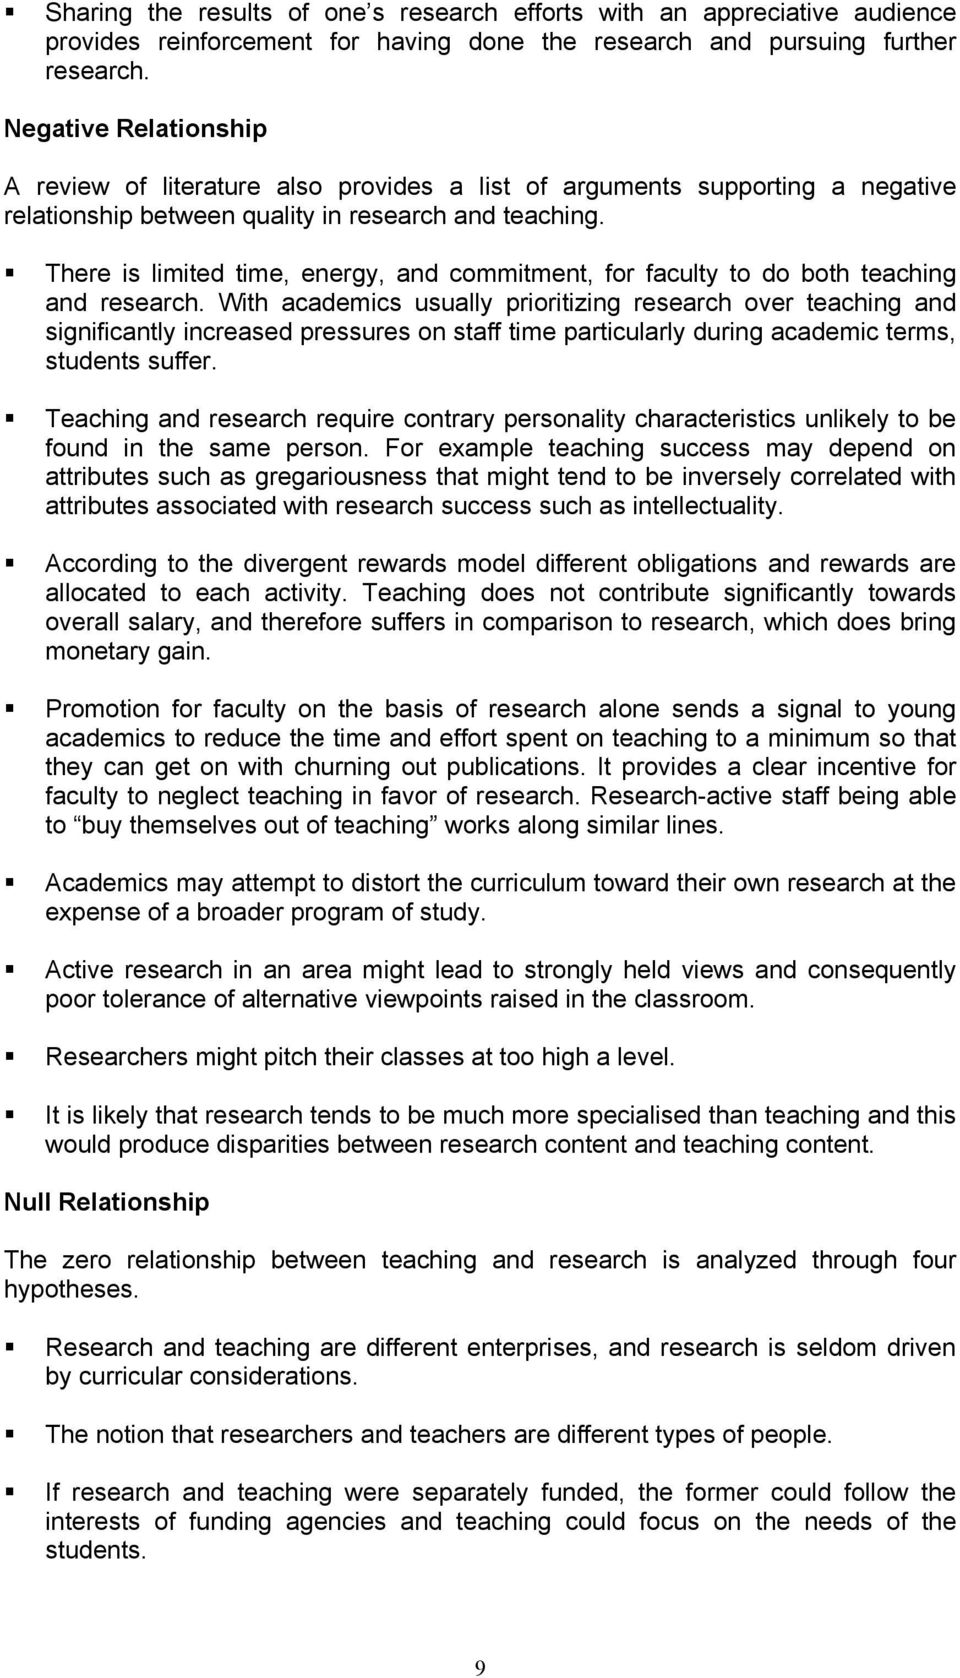 There is limited time, energy, and commitment, for faculty to do both teaching and research.